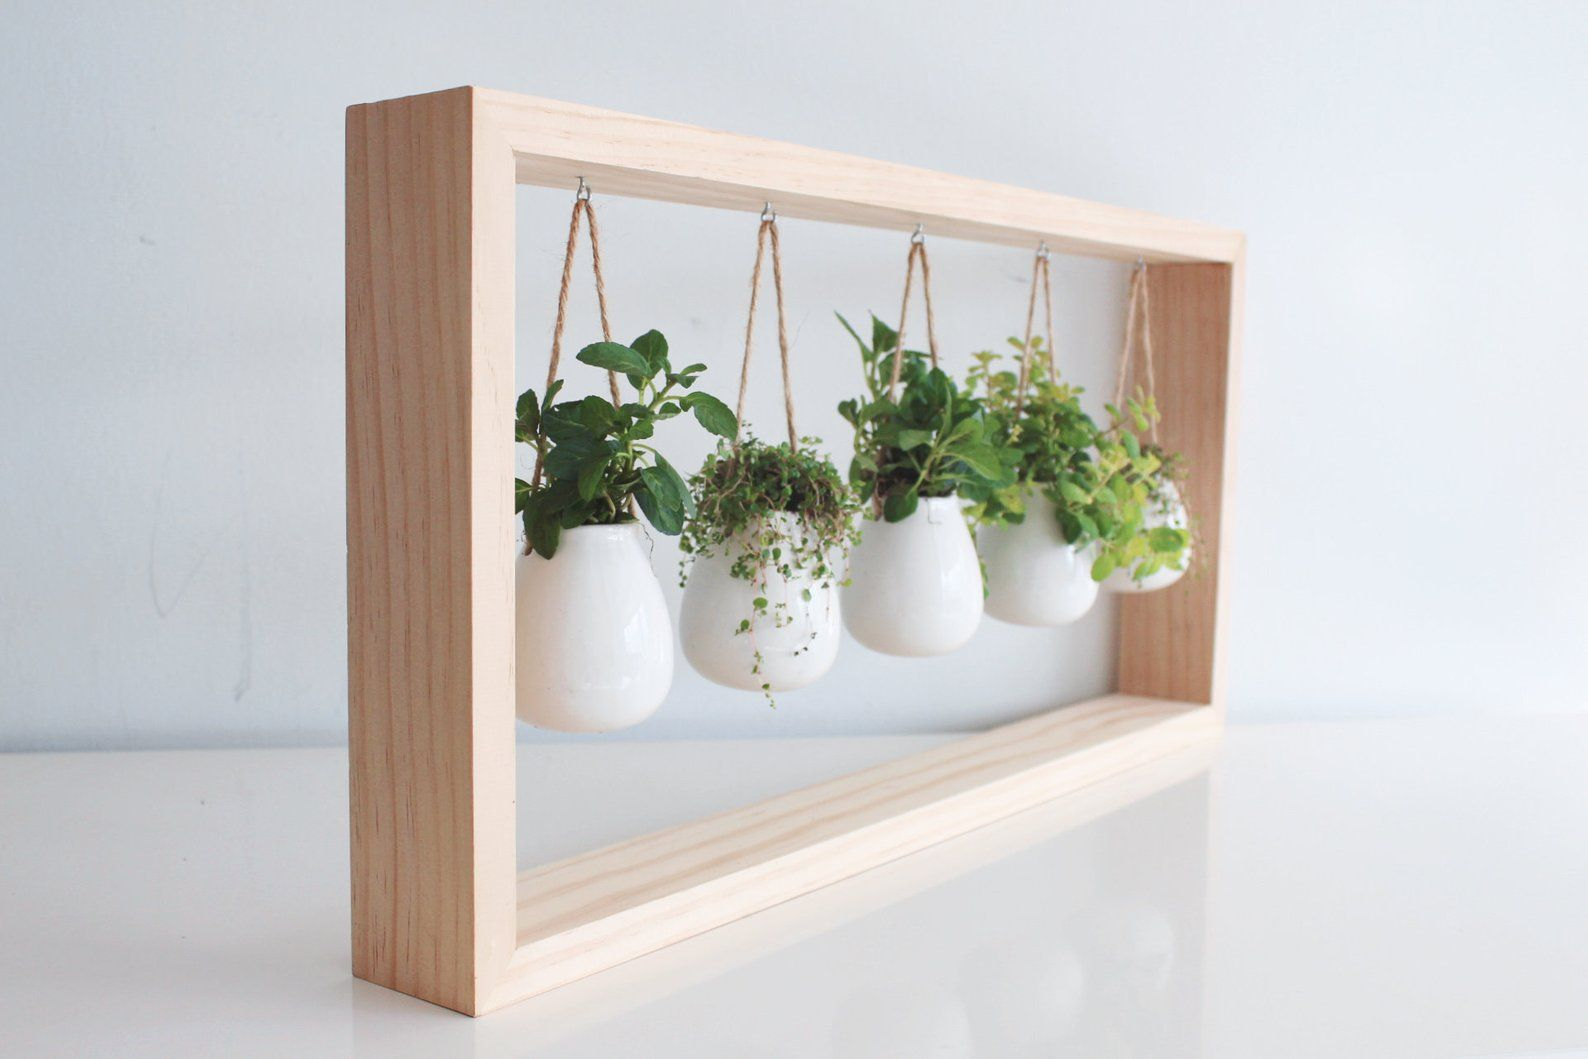 Photo of Succulent indoor garden in wooden frame Wall mount planter (Air plant gift) Hanging planter Indoor plant pot Mother's Day gift